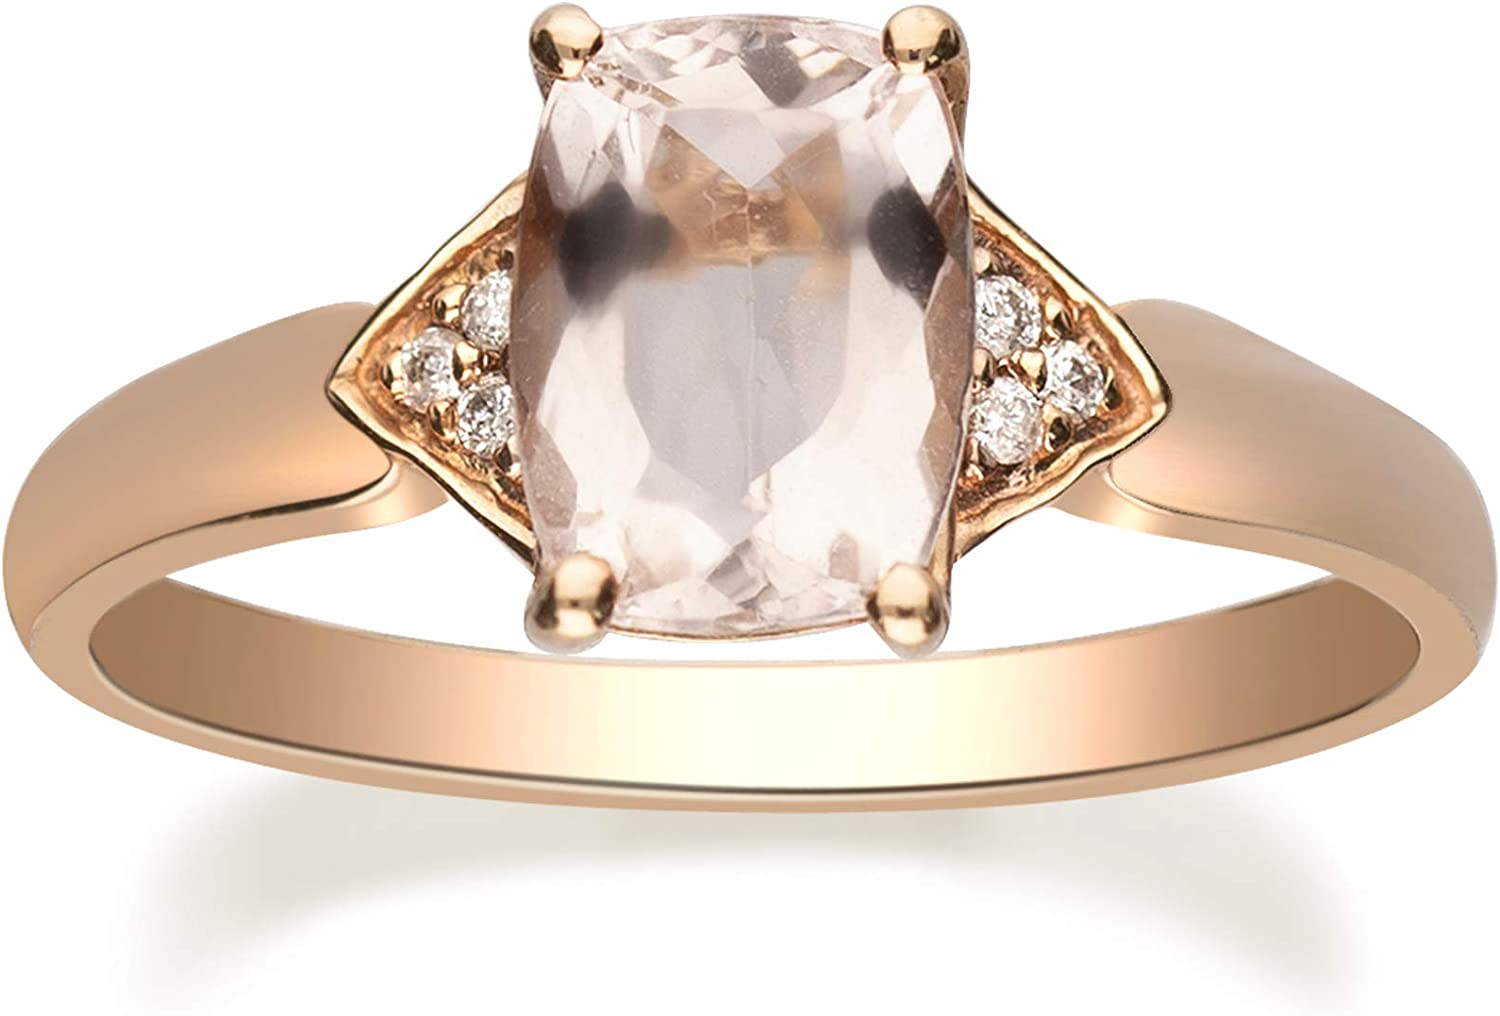 Gin & Grace 10K Rose Gold Real Diamond Engagment Anniversary Promise Ring (I1) with Genuine Morganite Daily Work Wear Jewelry for Women Gifts for Her